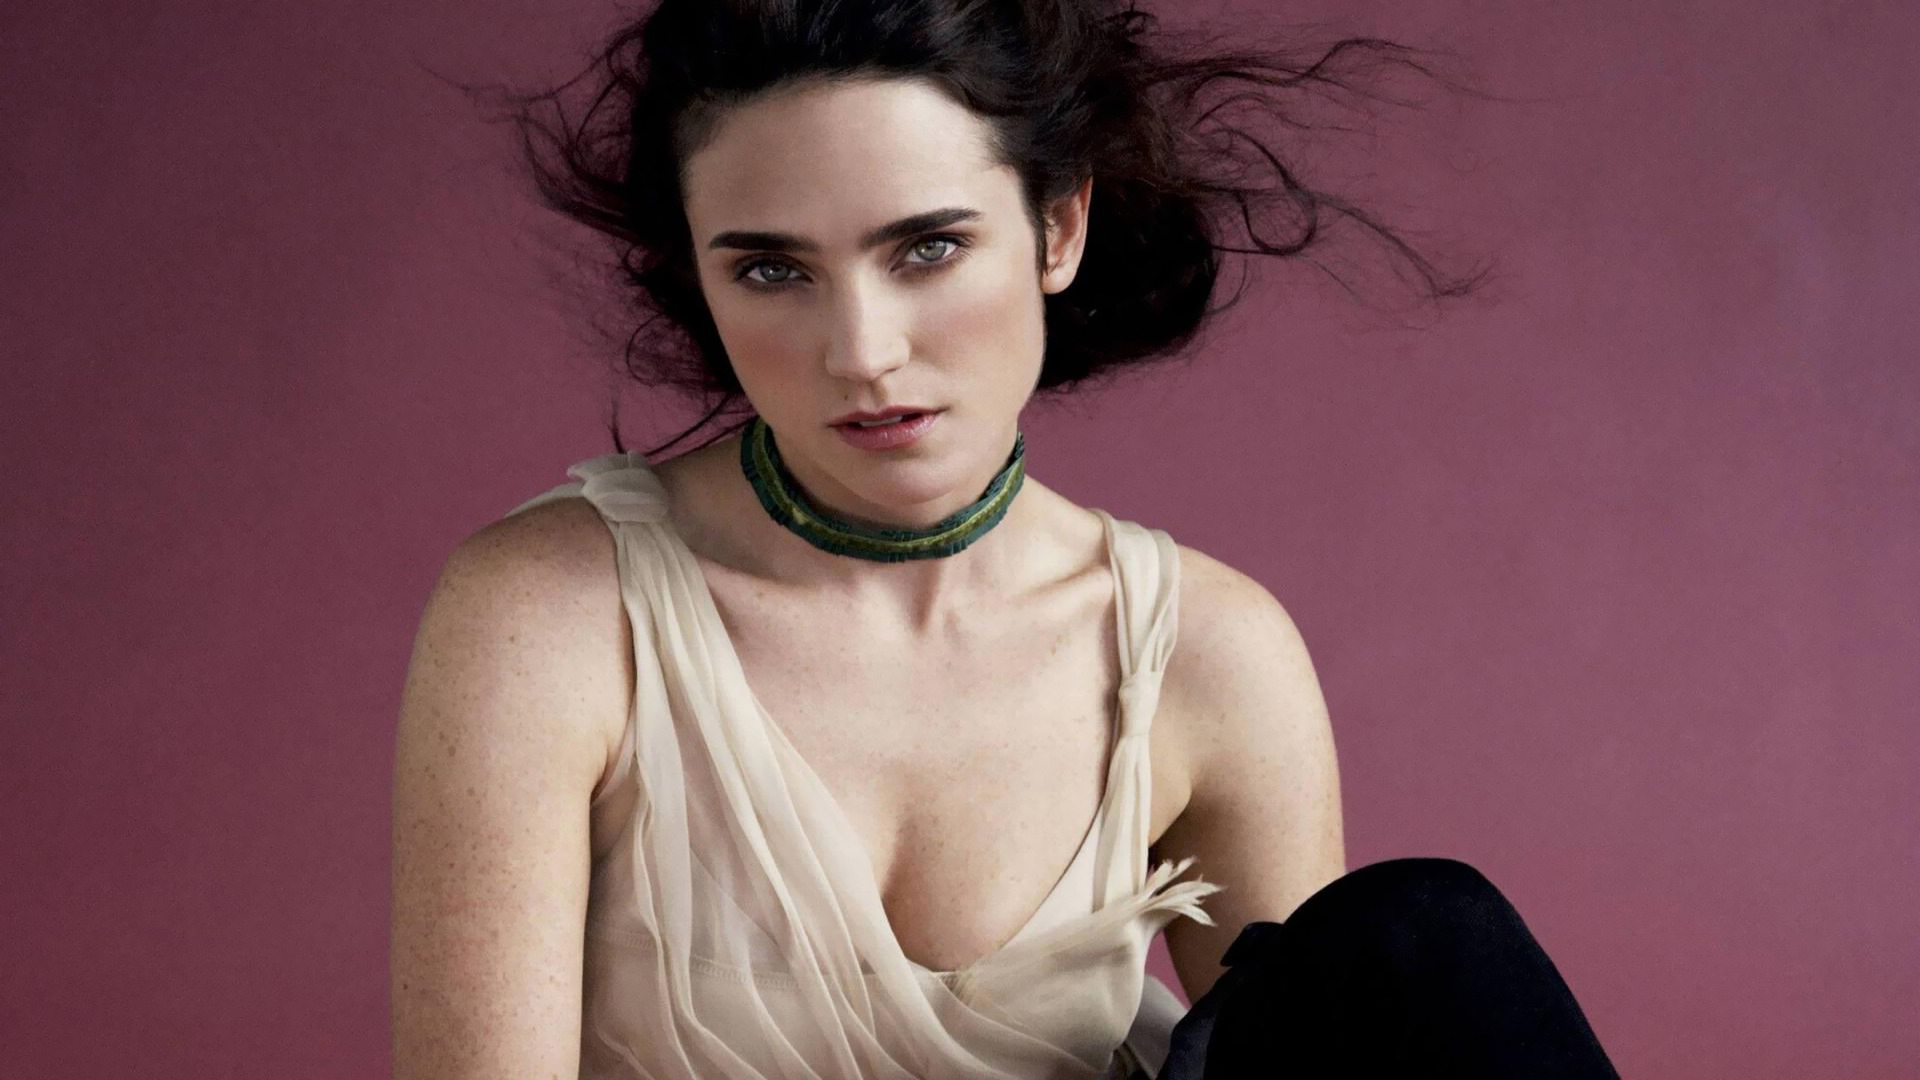 ... jennifer connelly desktop hd wallpaper -1 ...